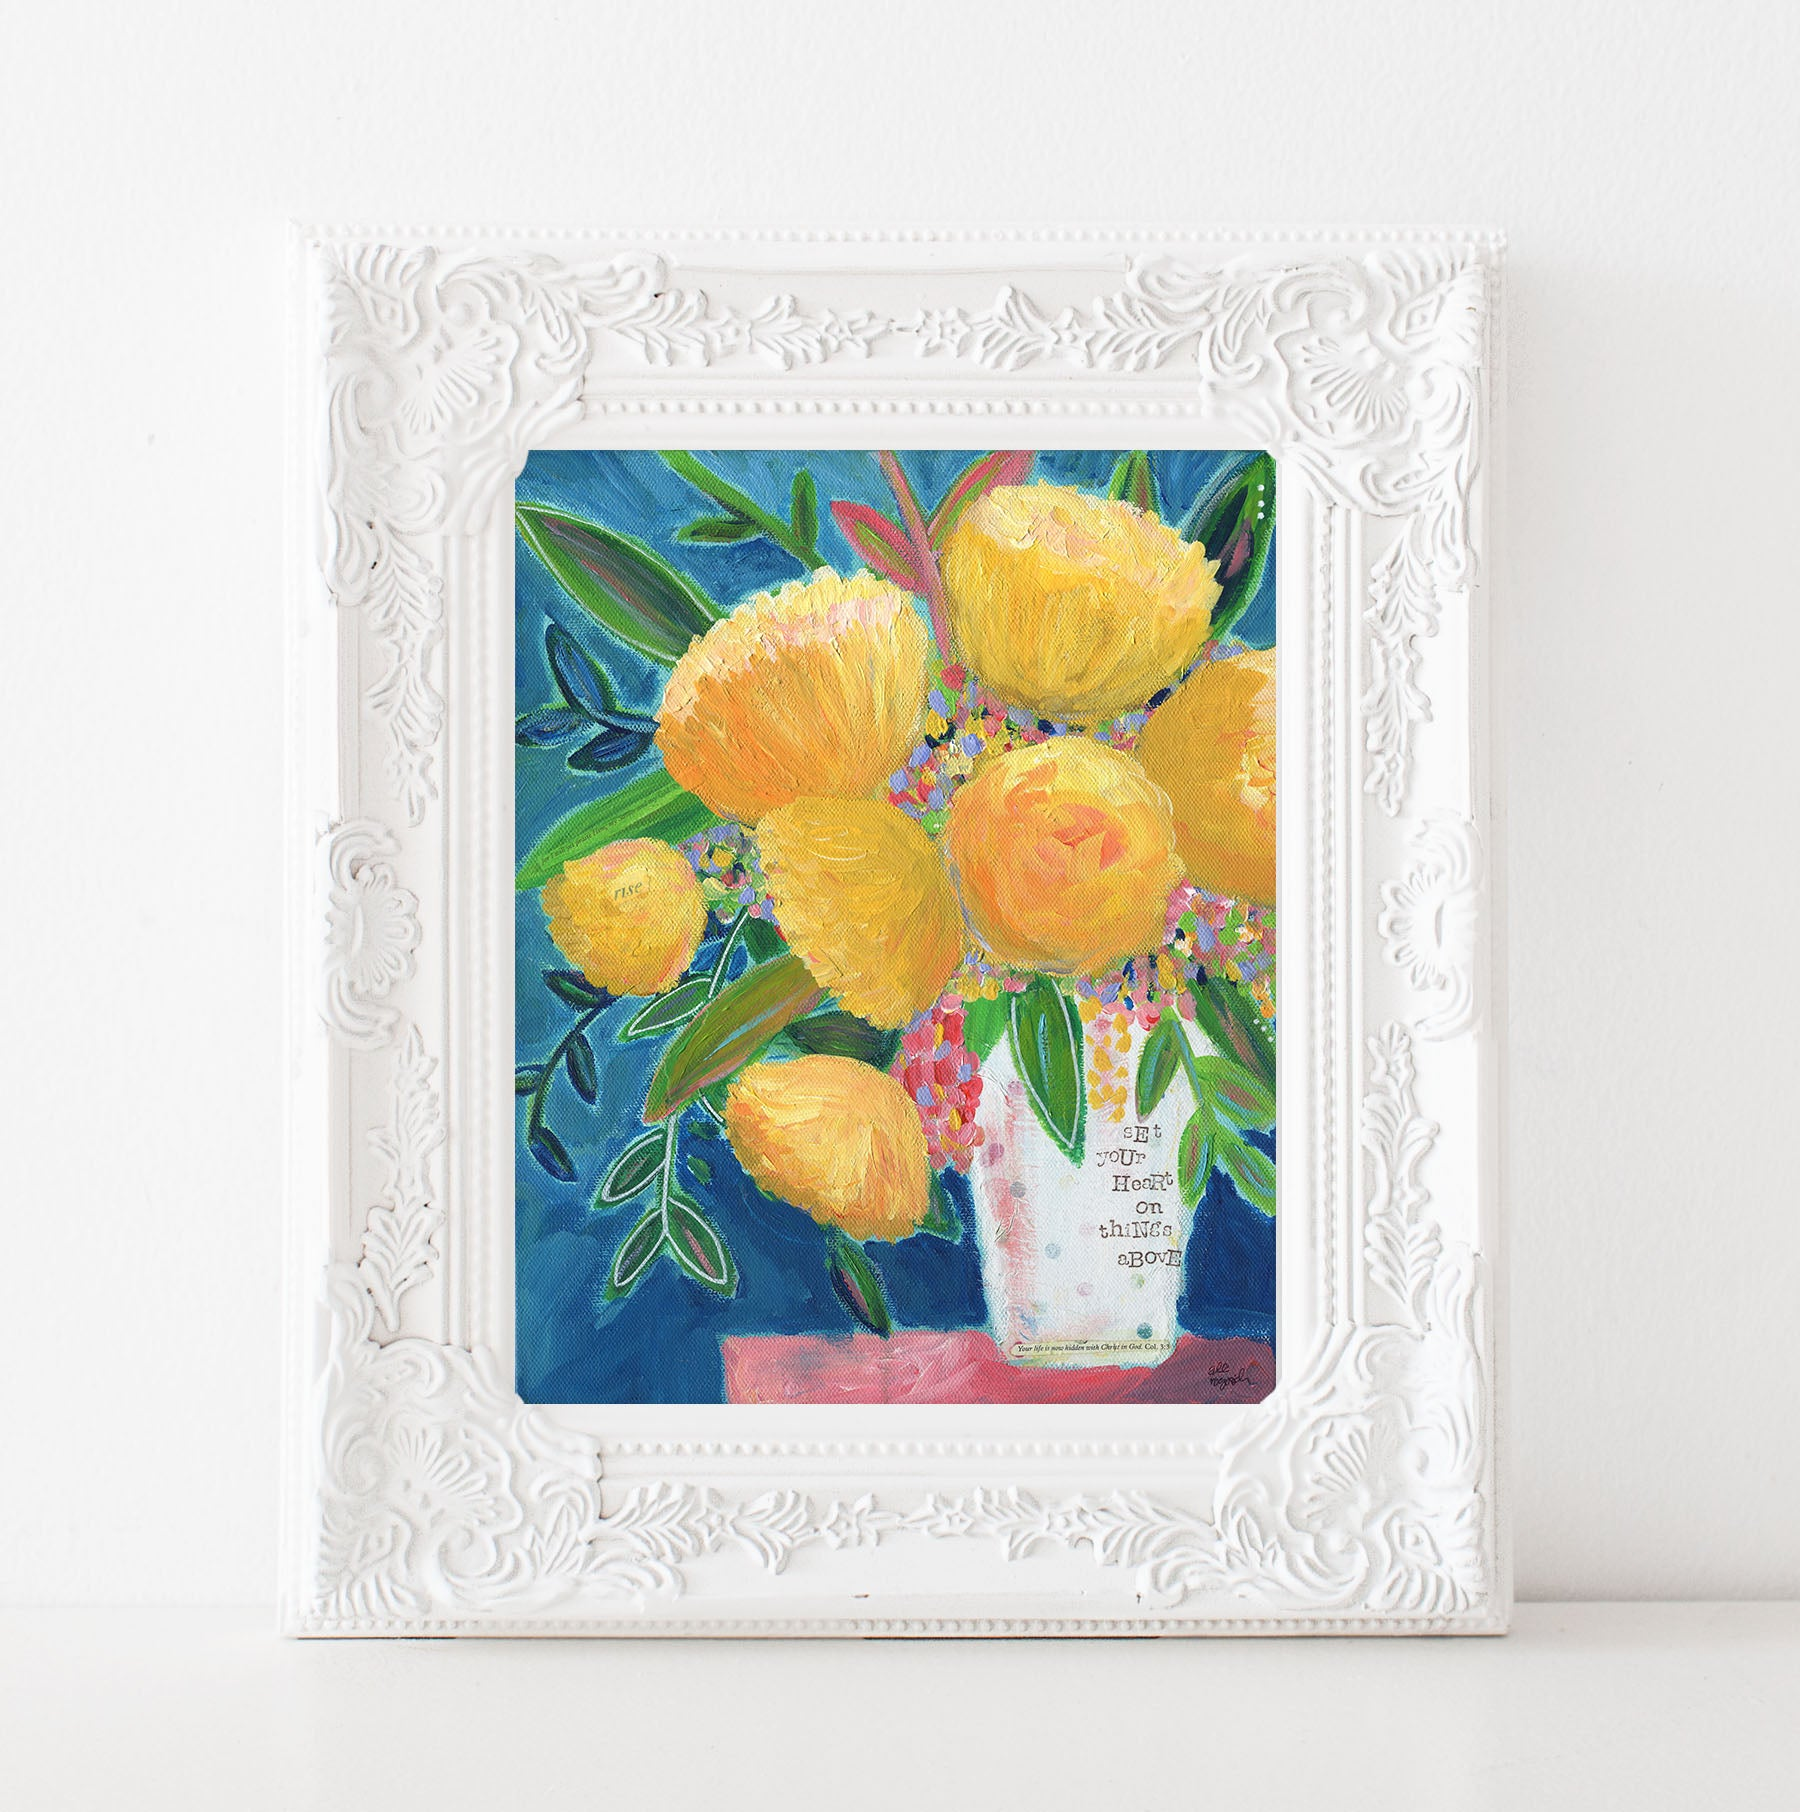 Navy and Yellow Floral Painting Art Print. Set your Heart on things above.